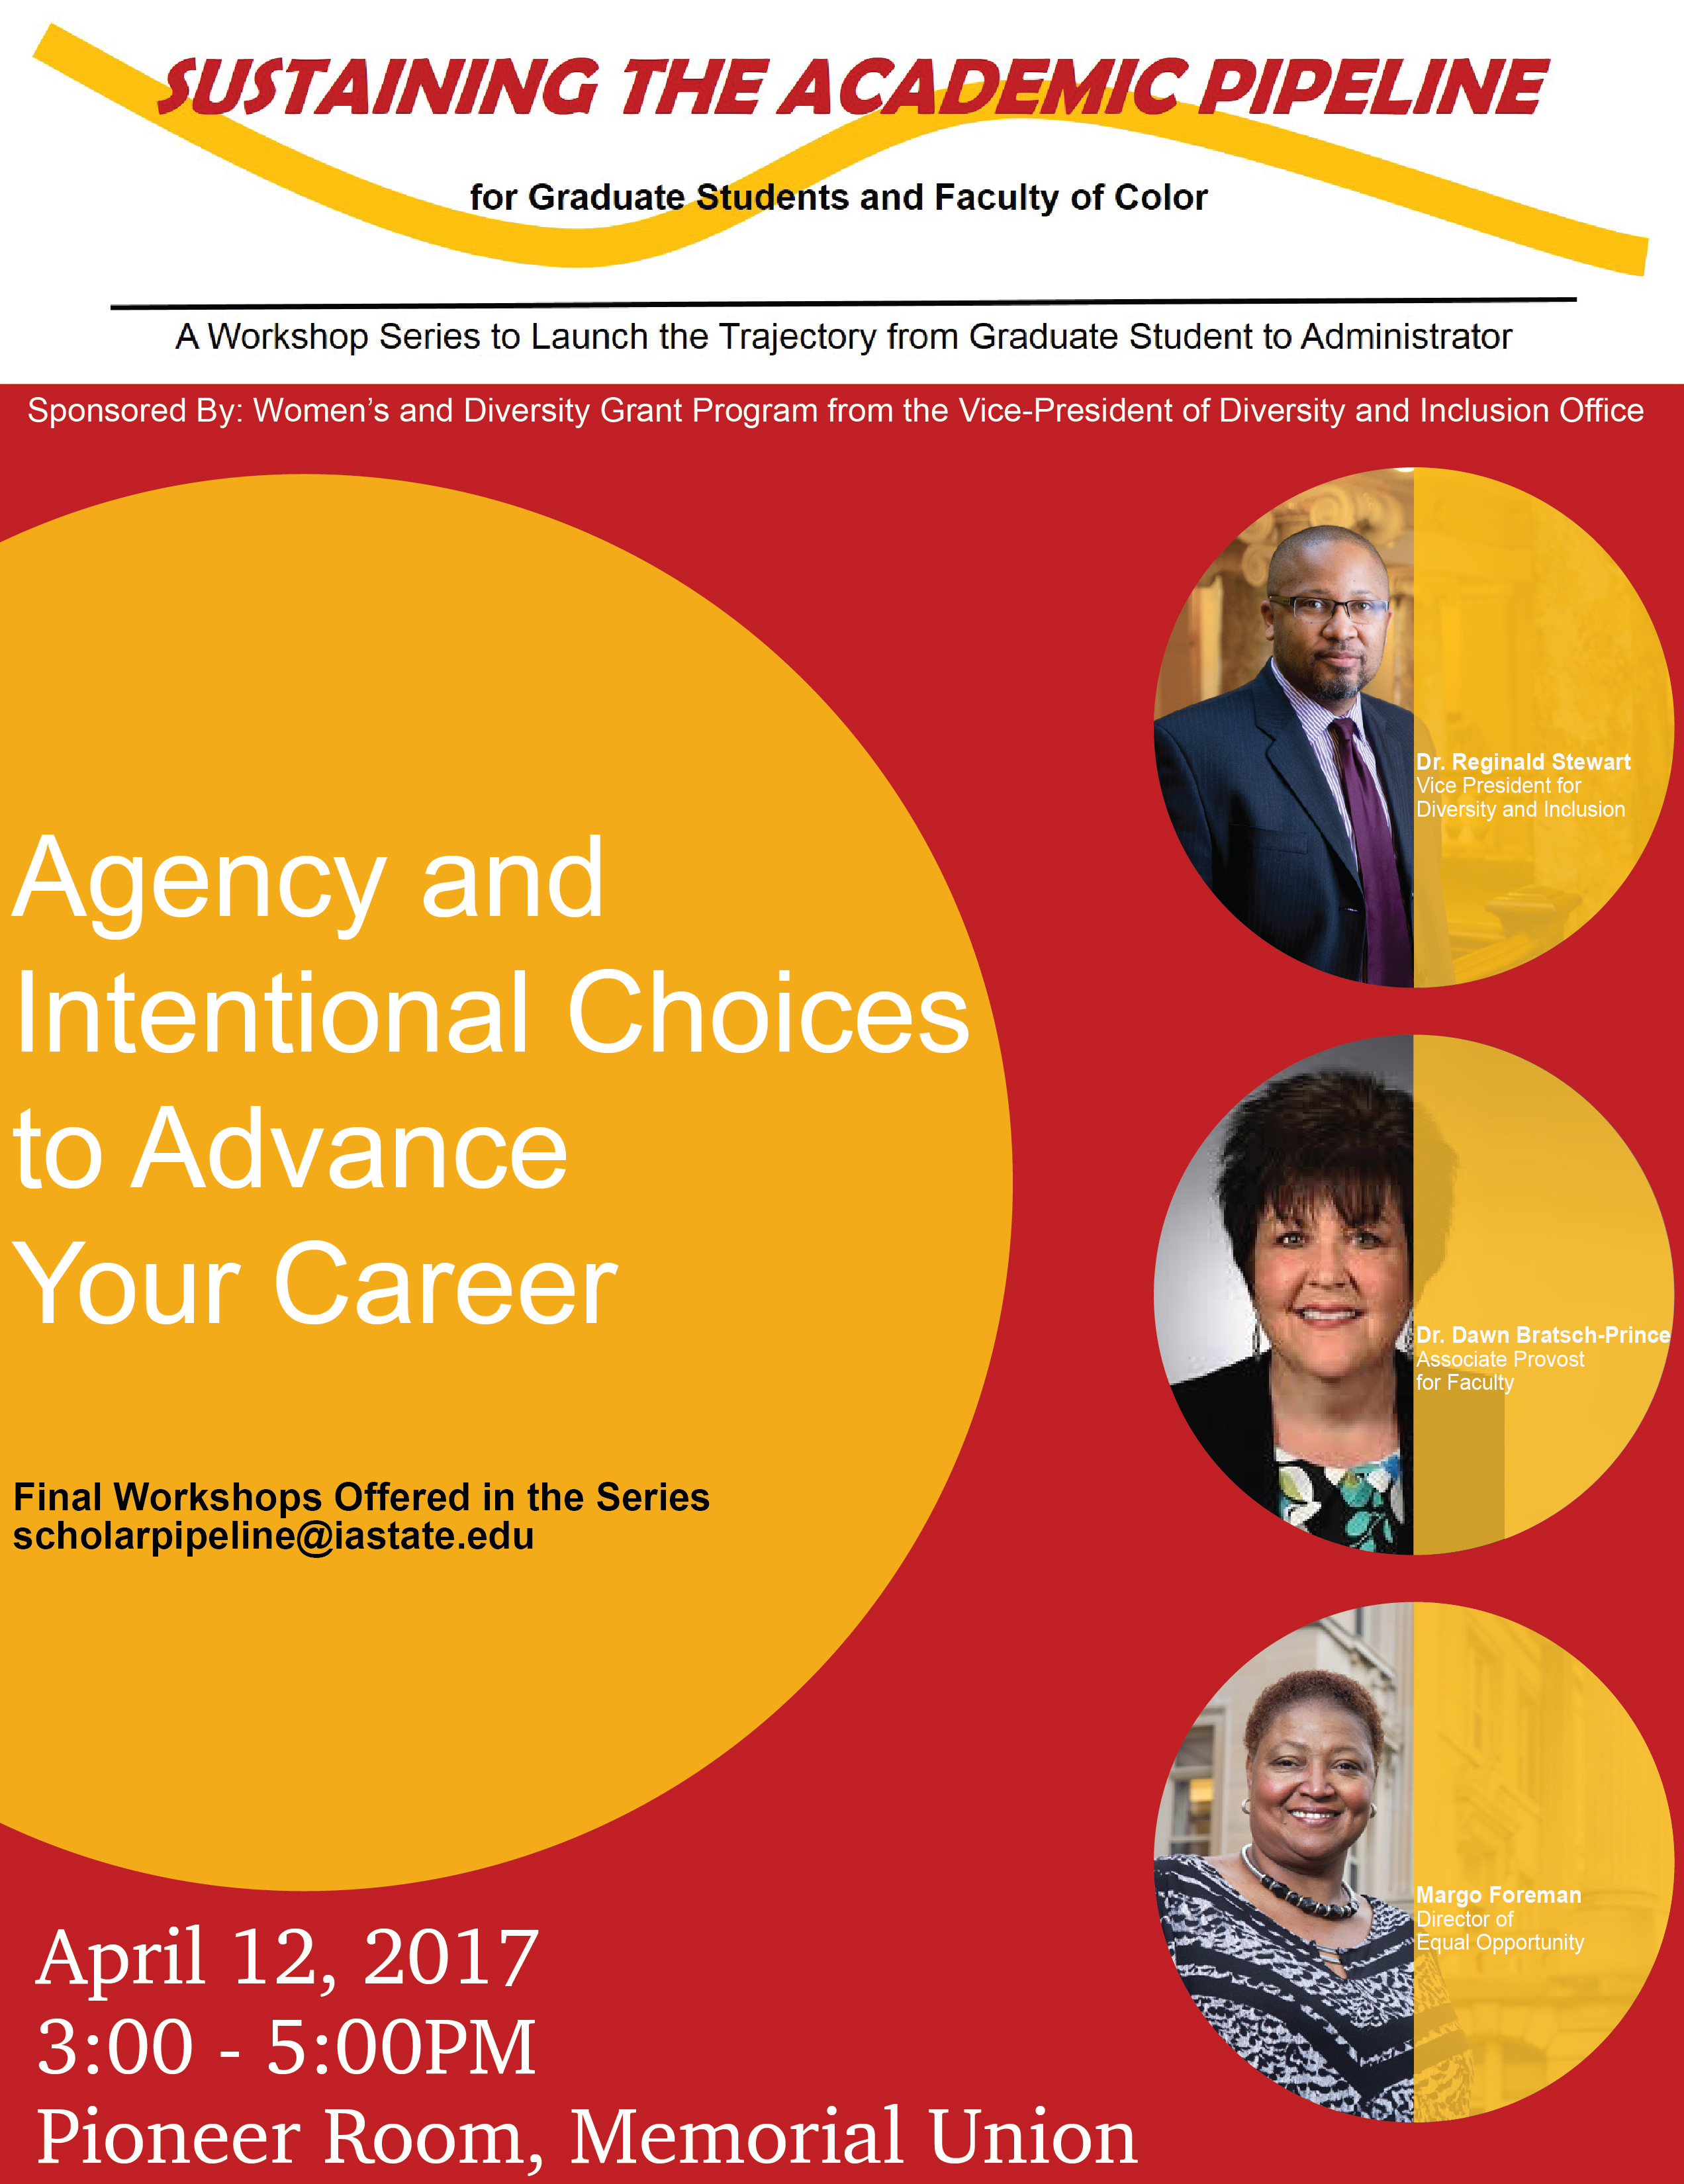 Sustaining the Academic Pipeline Workshop: Agency and Intentional Choices to Advance Your Career